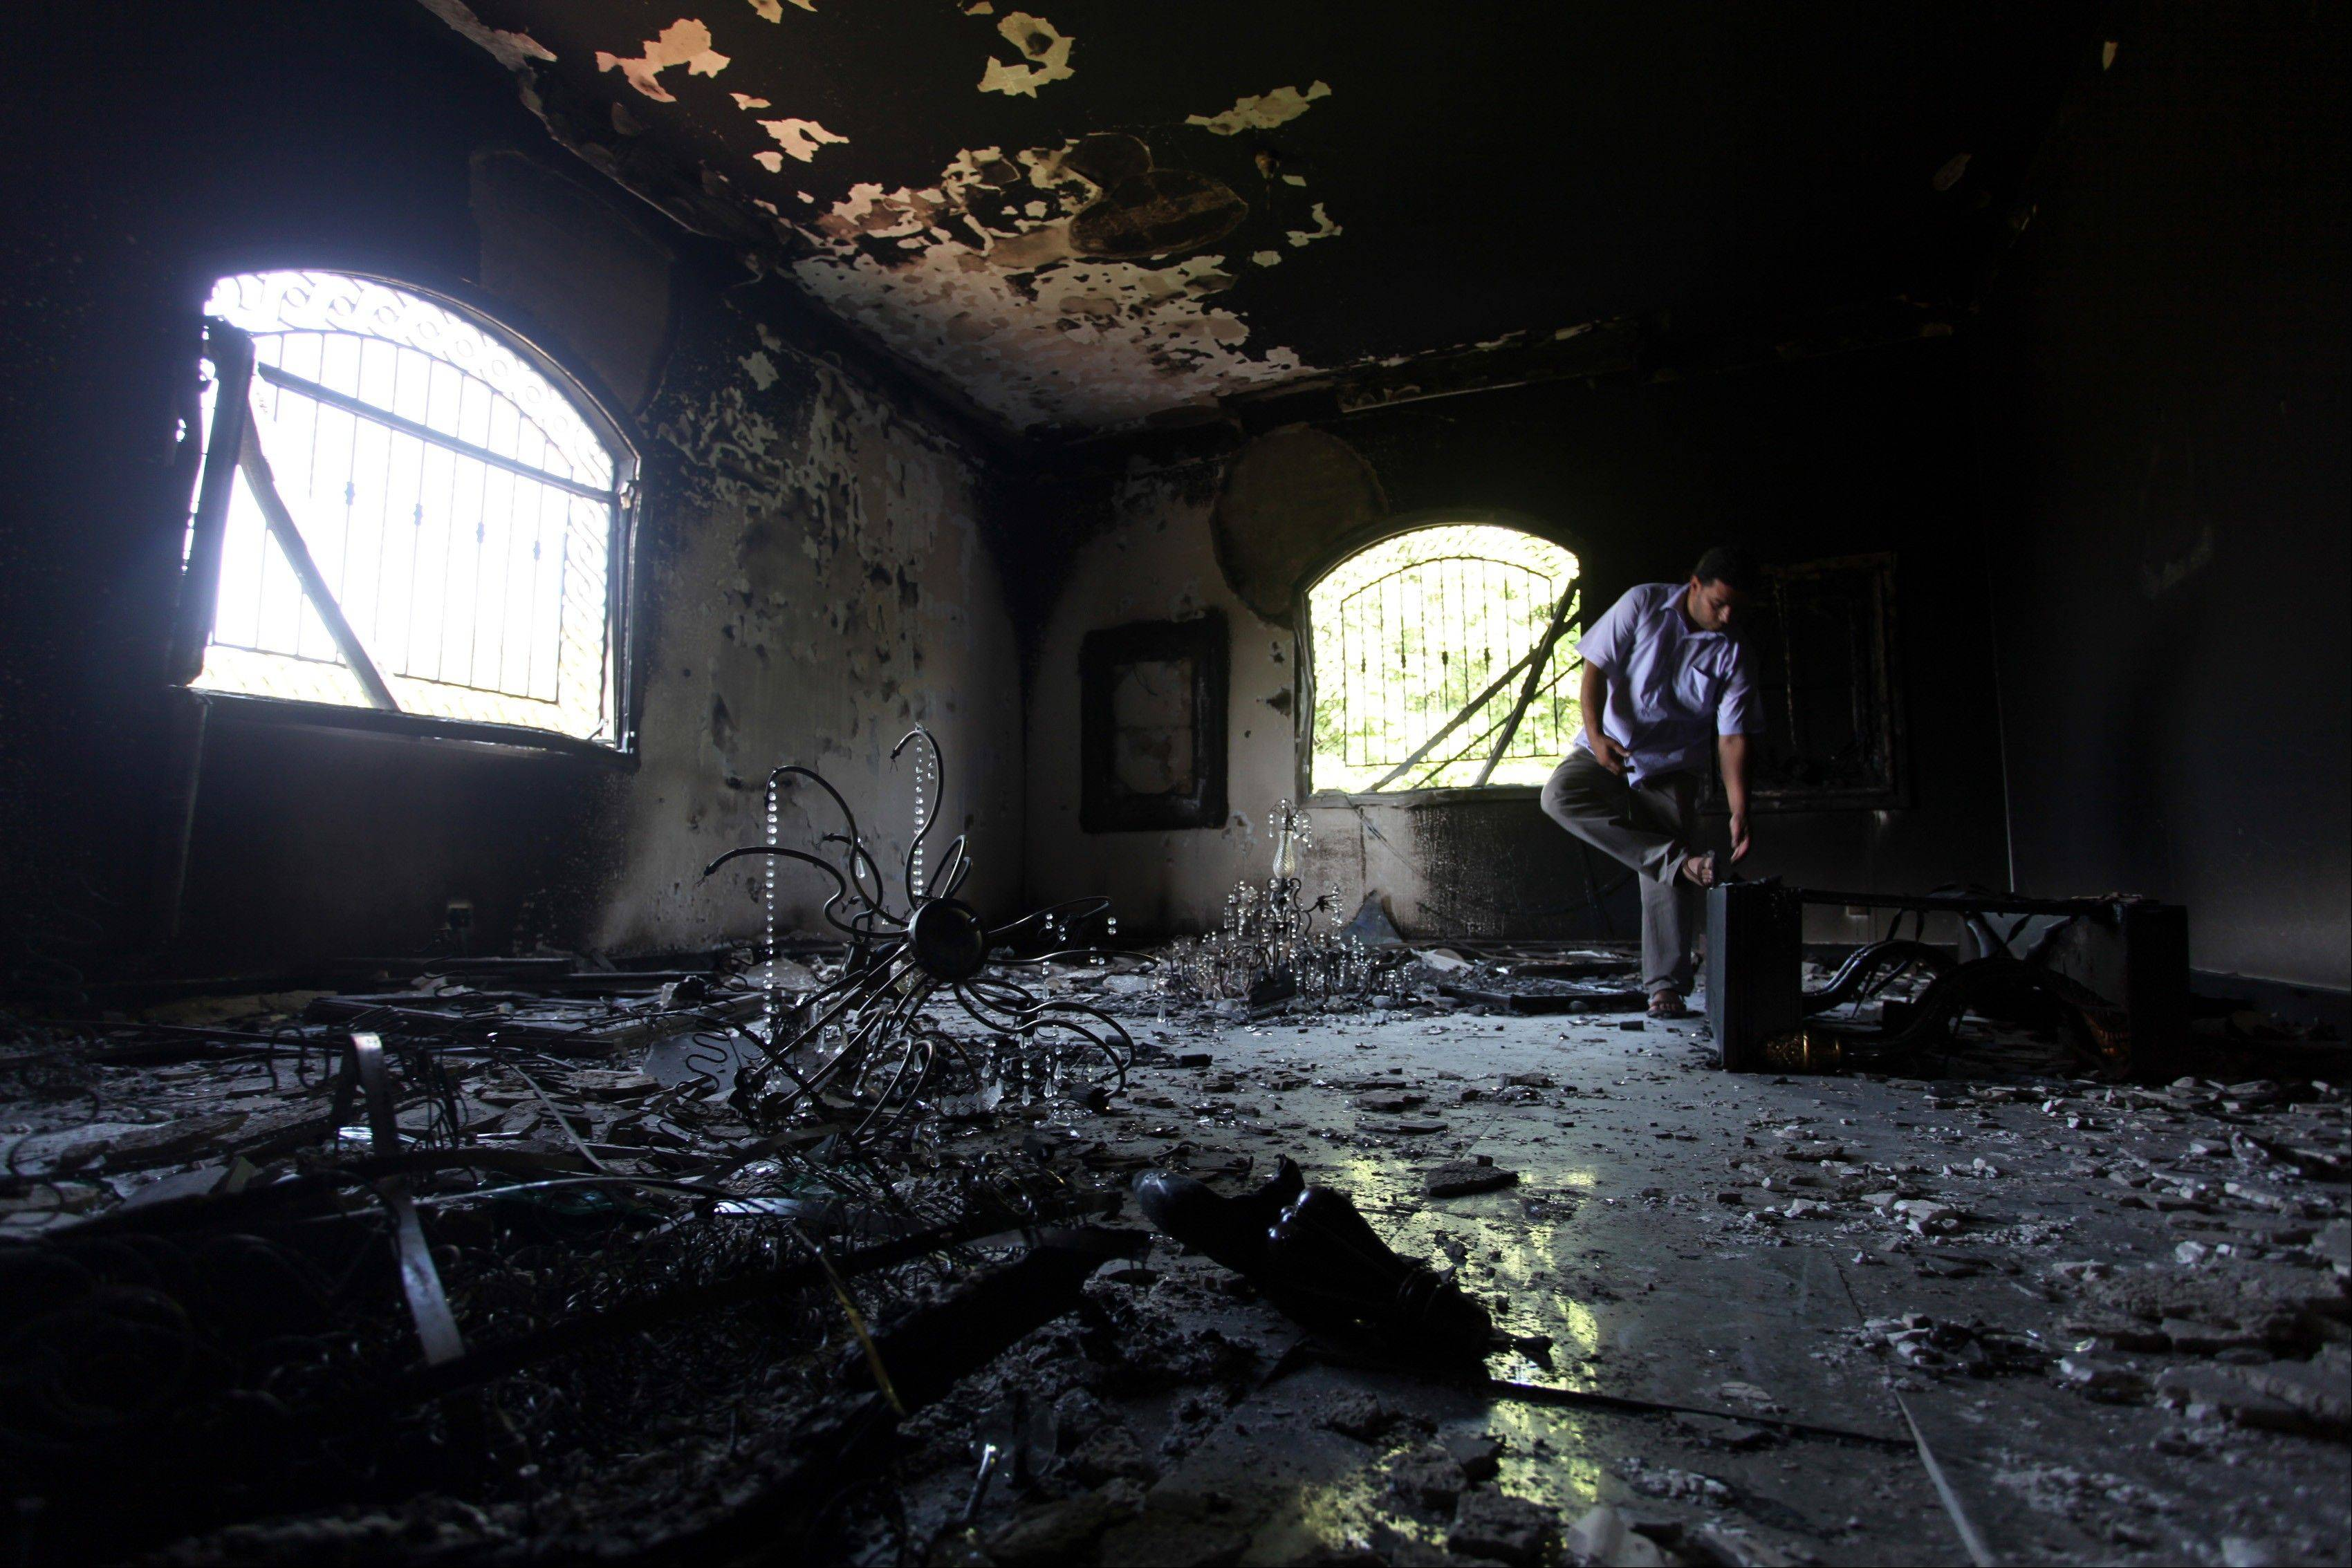 Intelligence Committee released a report on the deadly assault on the diplomatic compound in Benghazi, Libya, Wednesday, laying blame on the State Department, the late Ambassador Chris Stevens and the intelligence community for failing to communicate and heed warnings of terrorist activity.